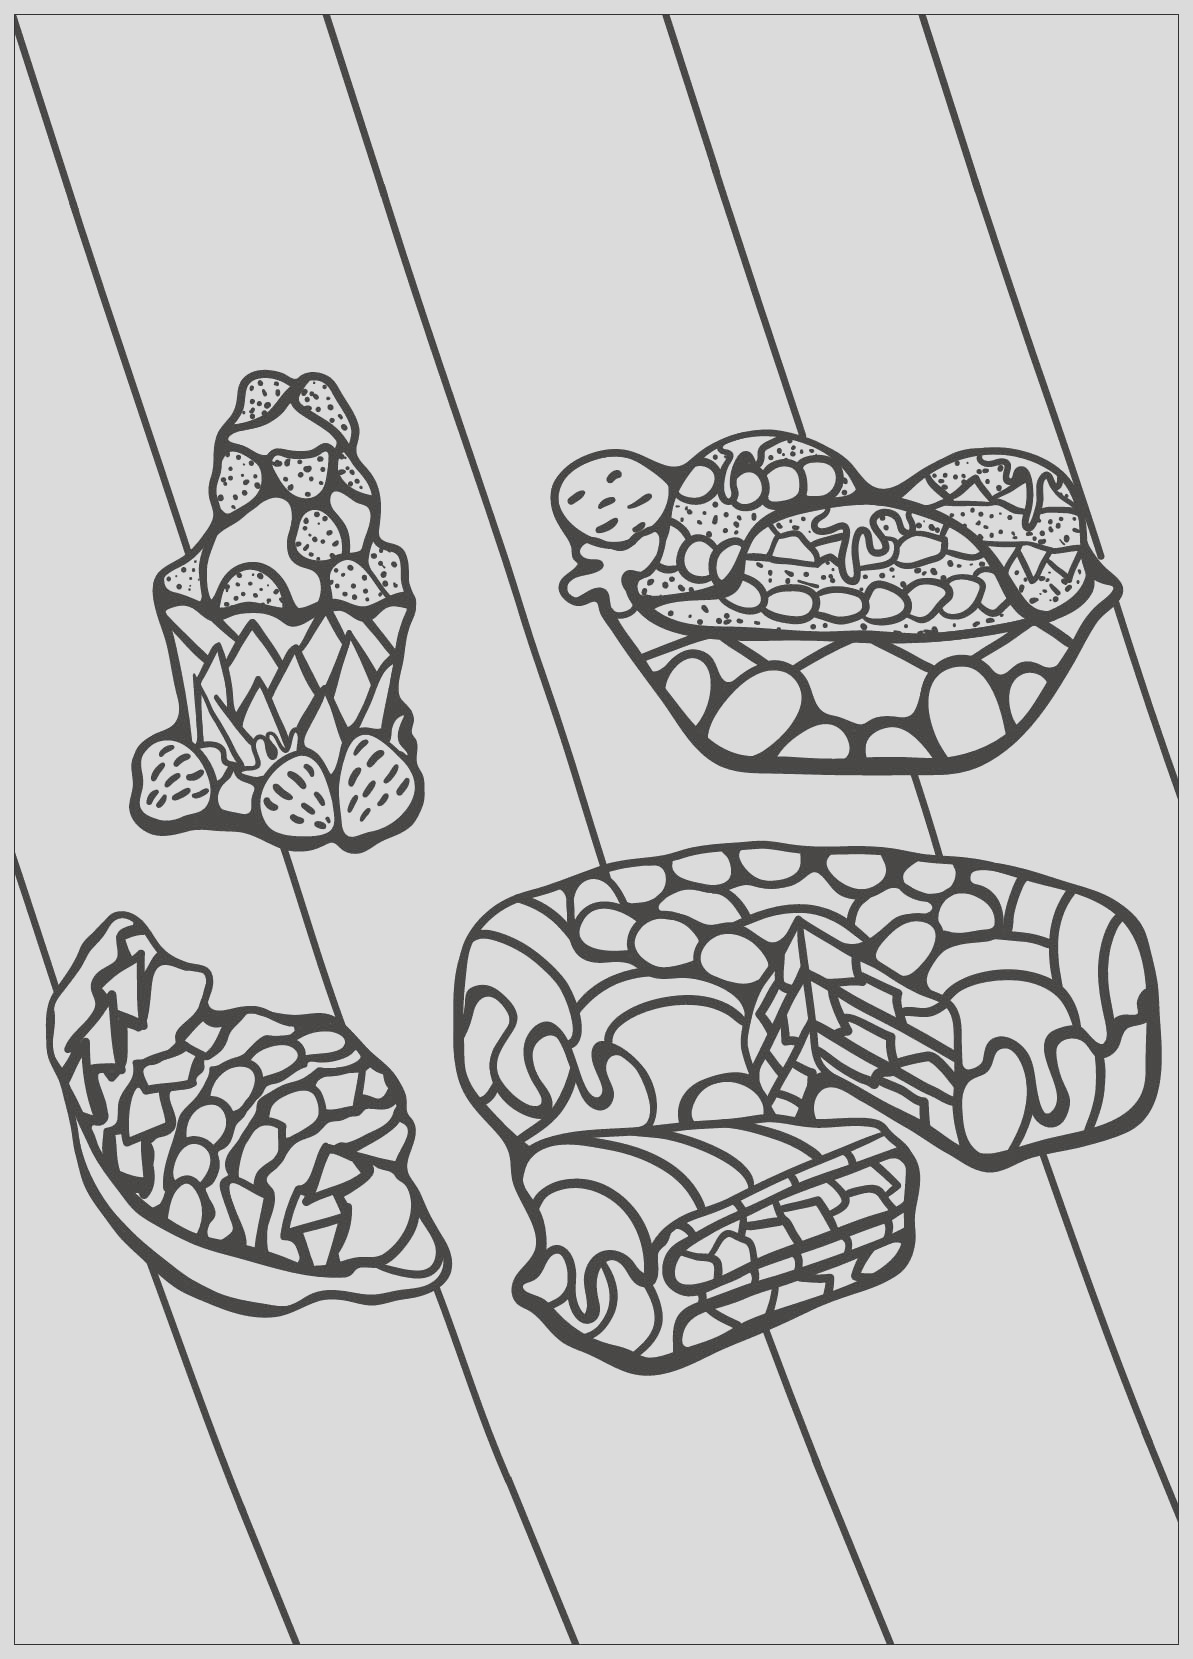 image=cup cakes coloring free book cupcake 11 1